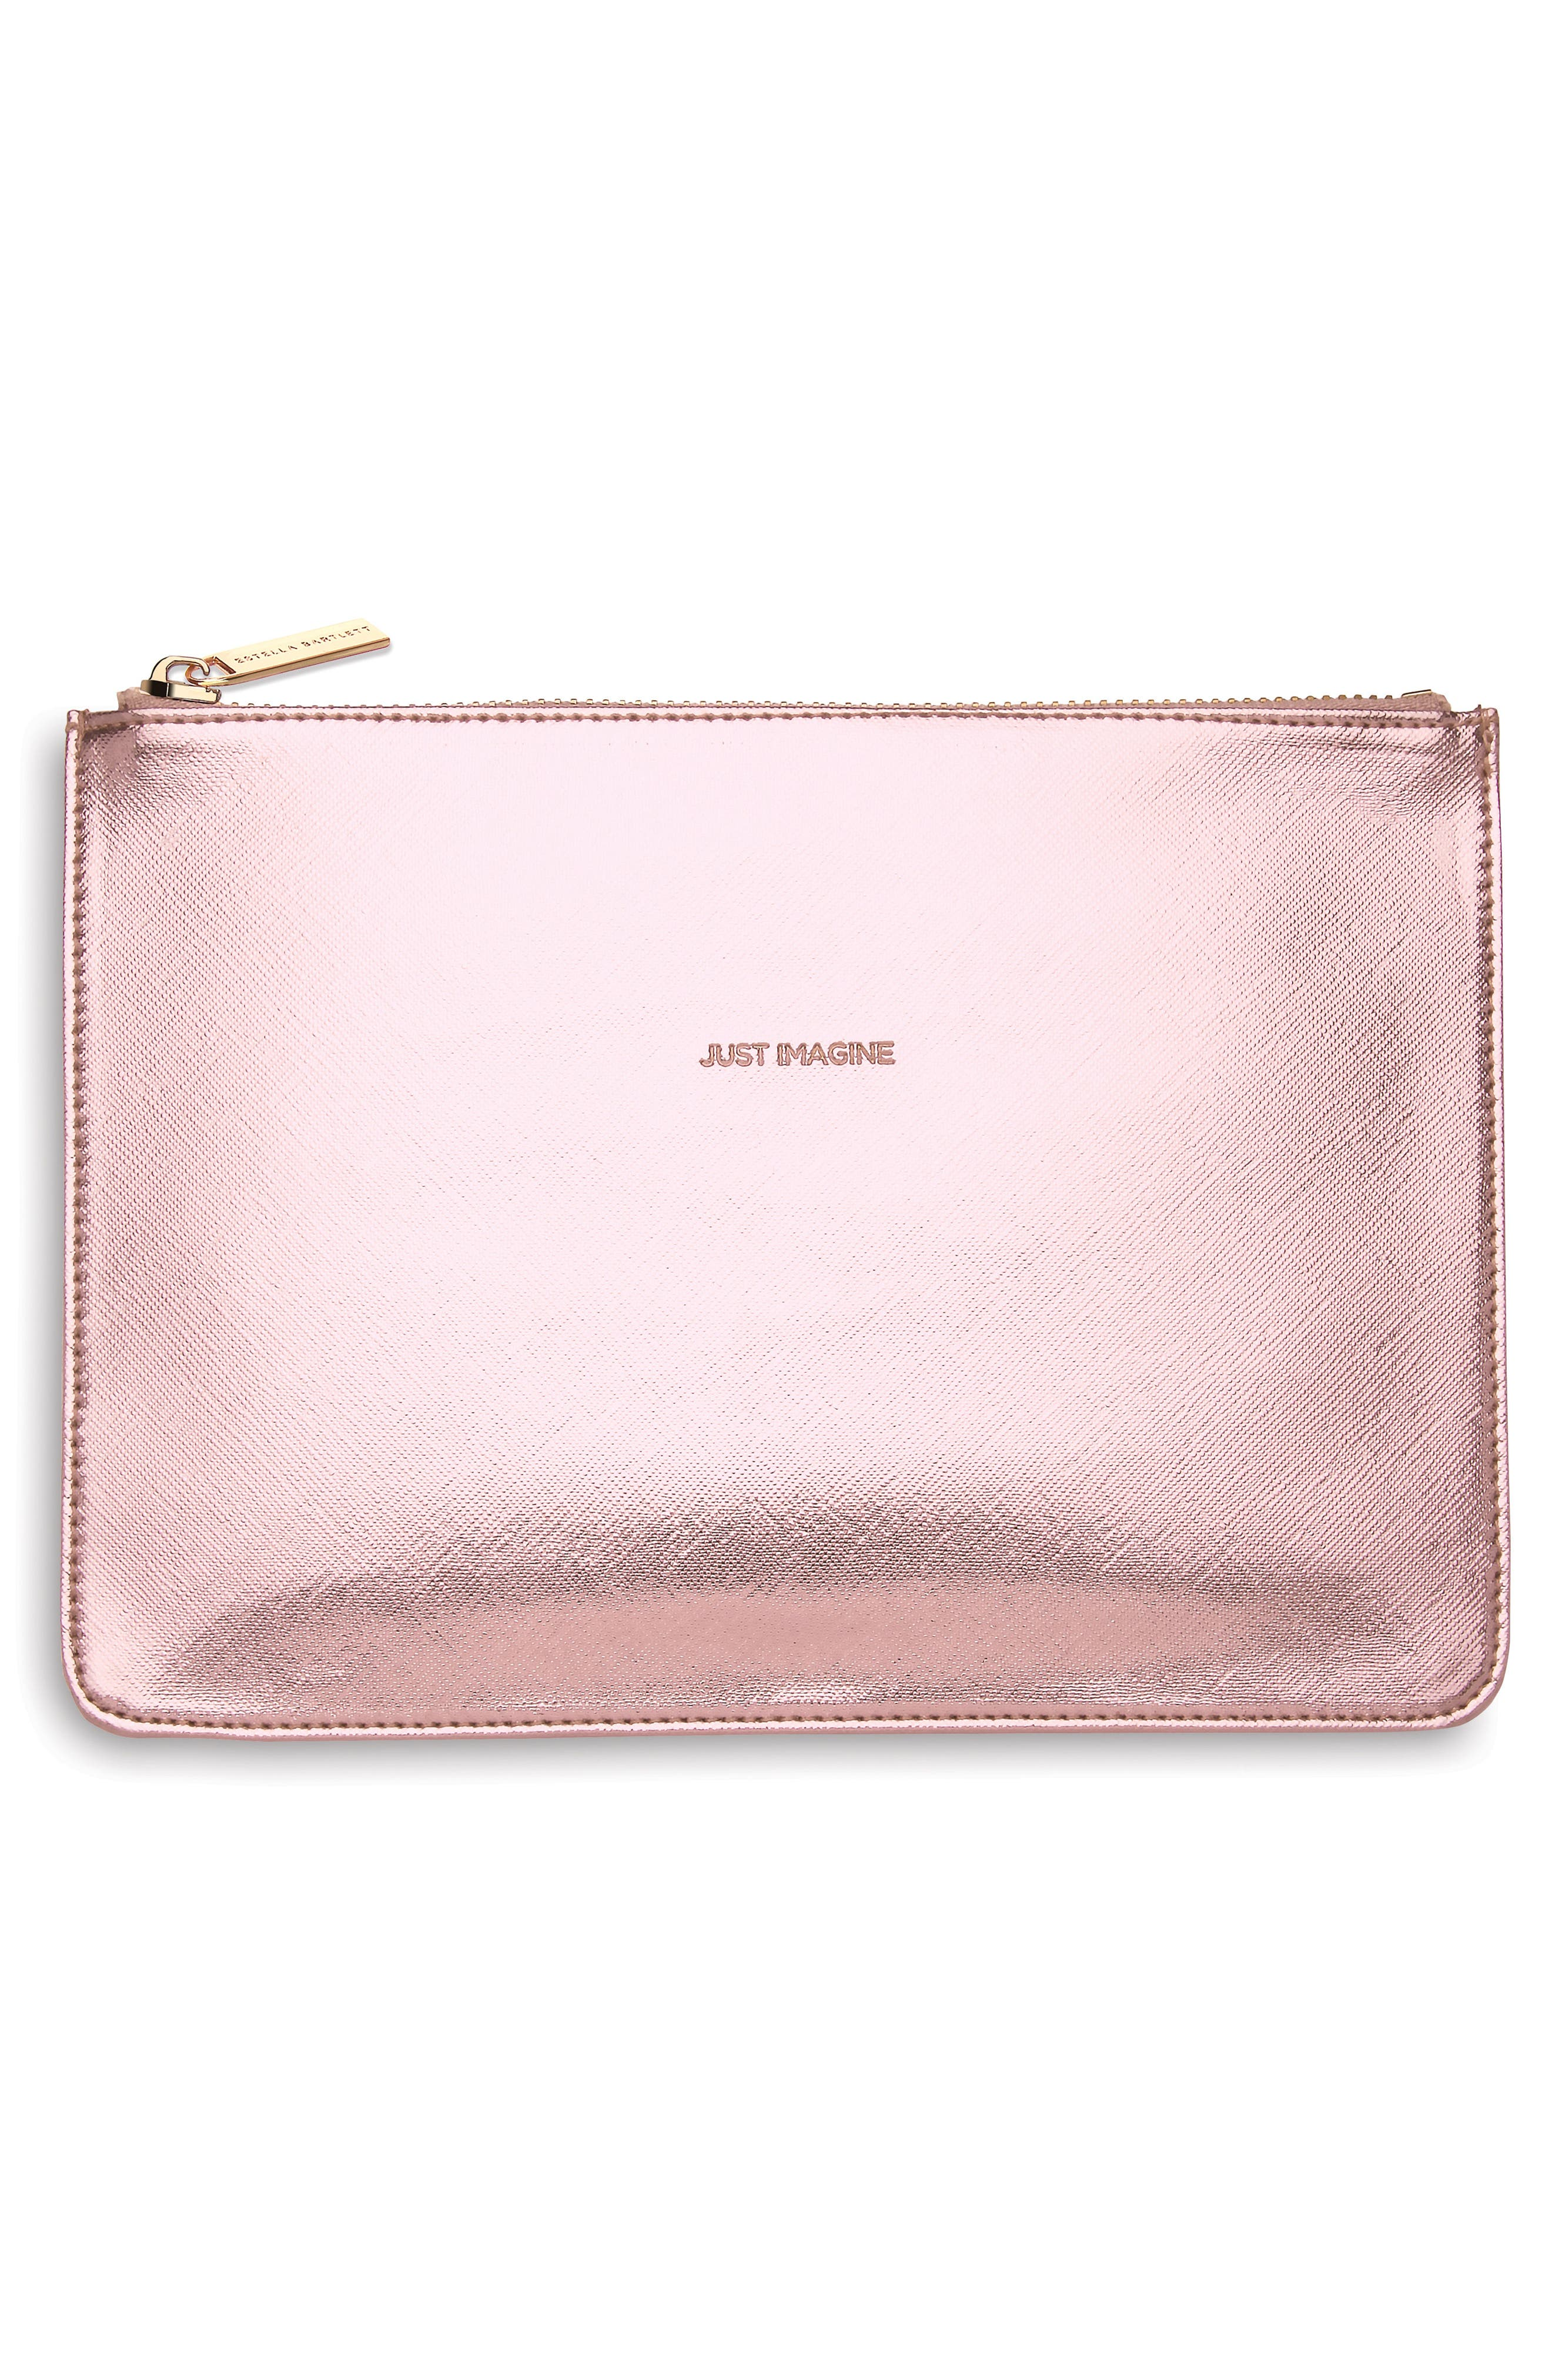 Just Imagine Faux Leather Pouch,                         Main,                         color, Rose Gold